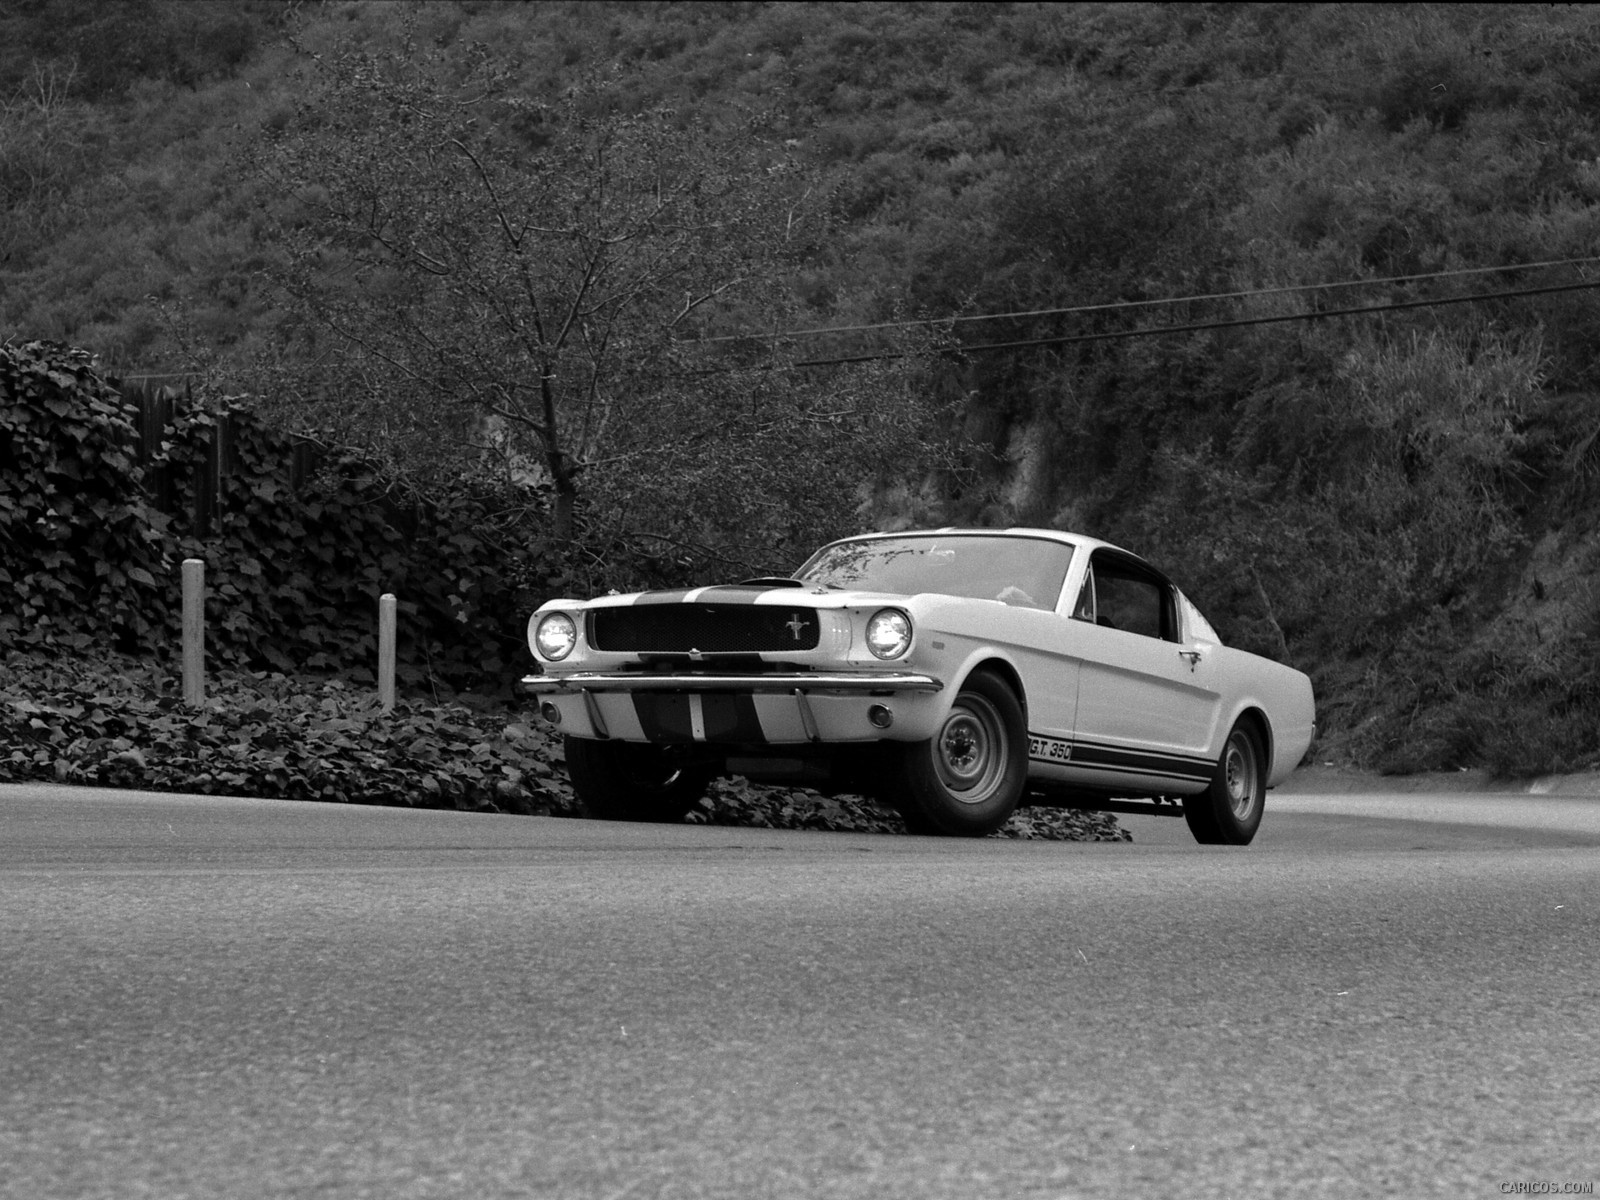 Ford Mustang Shelby GT350 fotoğraf